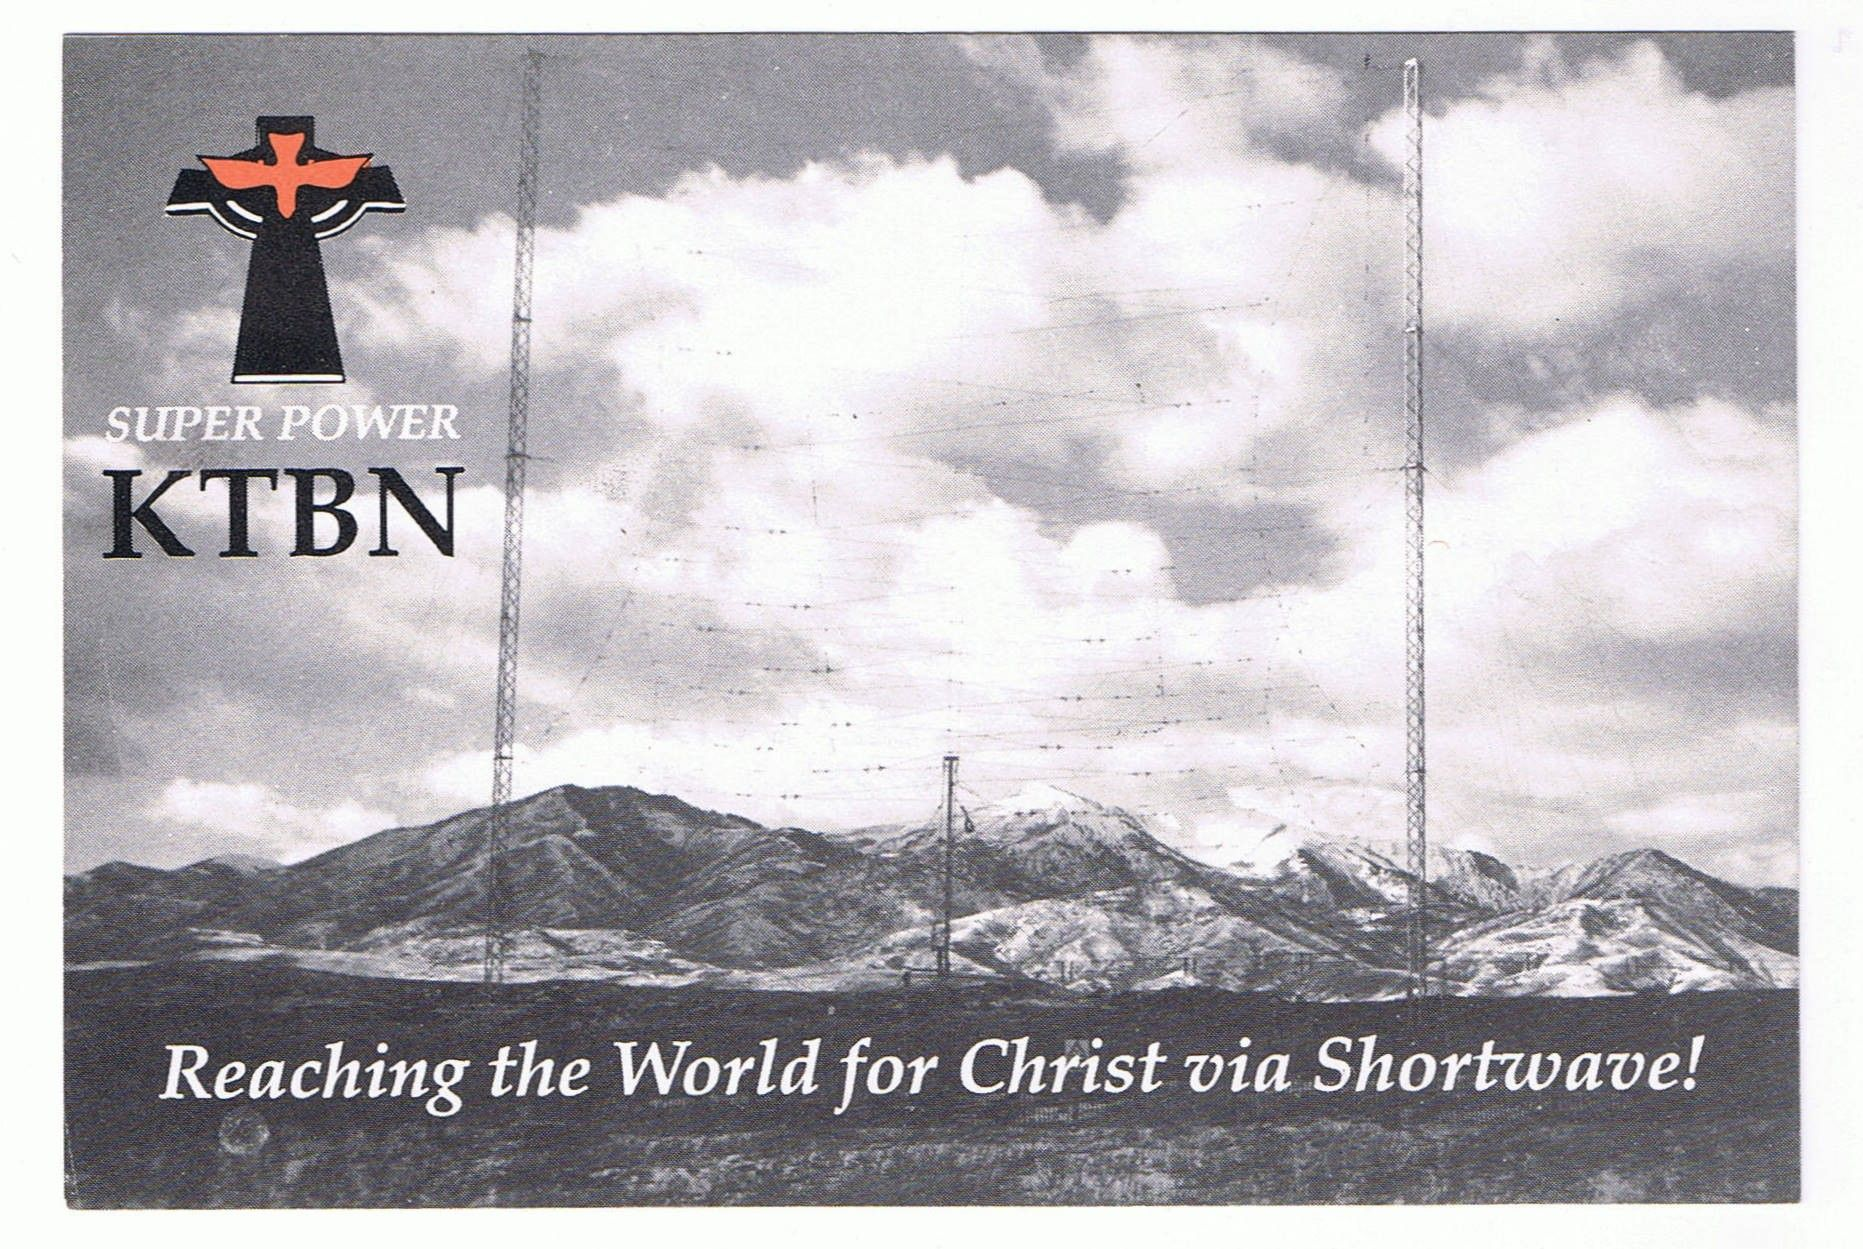 Pin by Global DXer on QSL Cards Short waves, Super